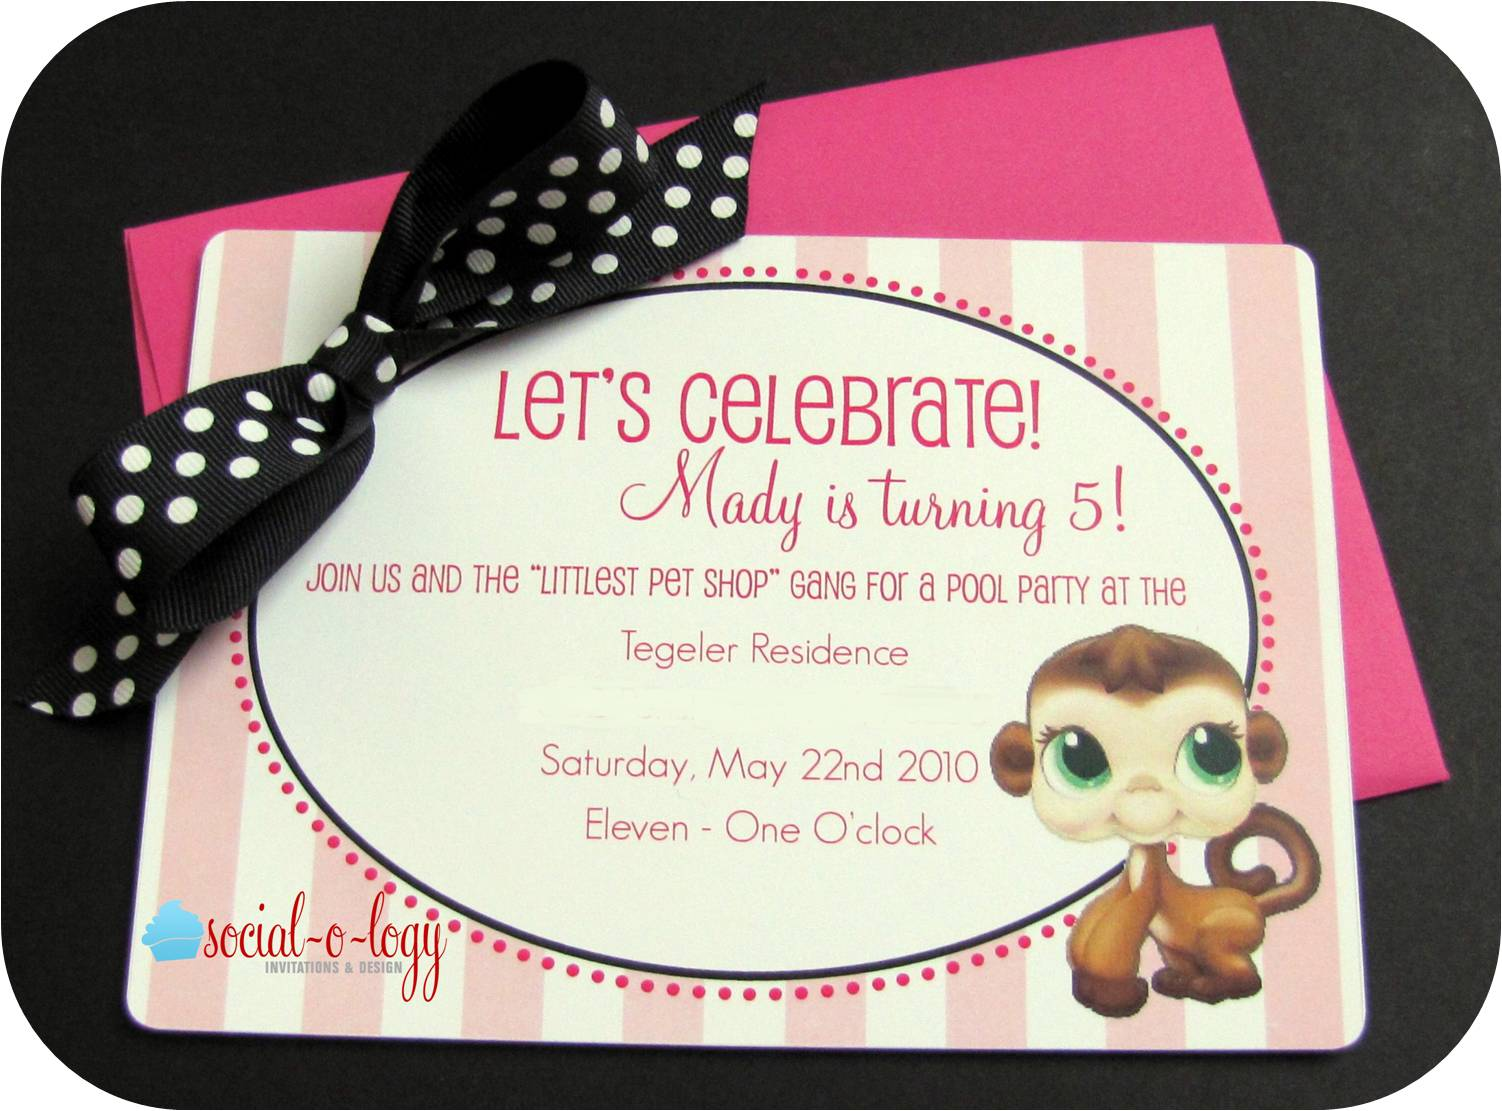 Socialology Invitations and Design The Birthday Party Littlest